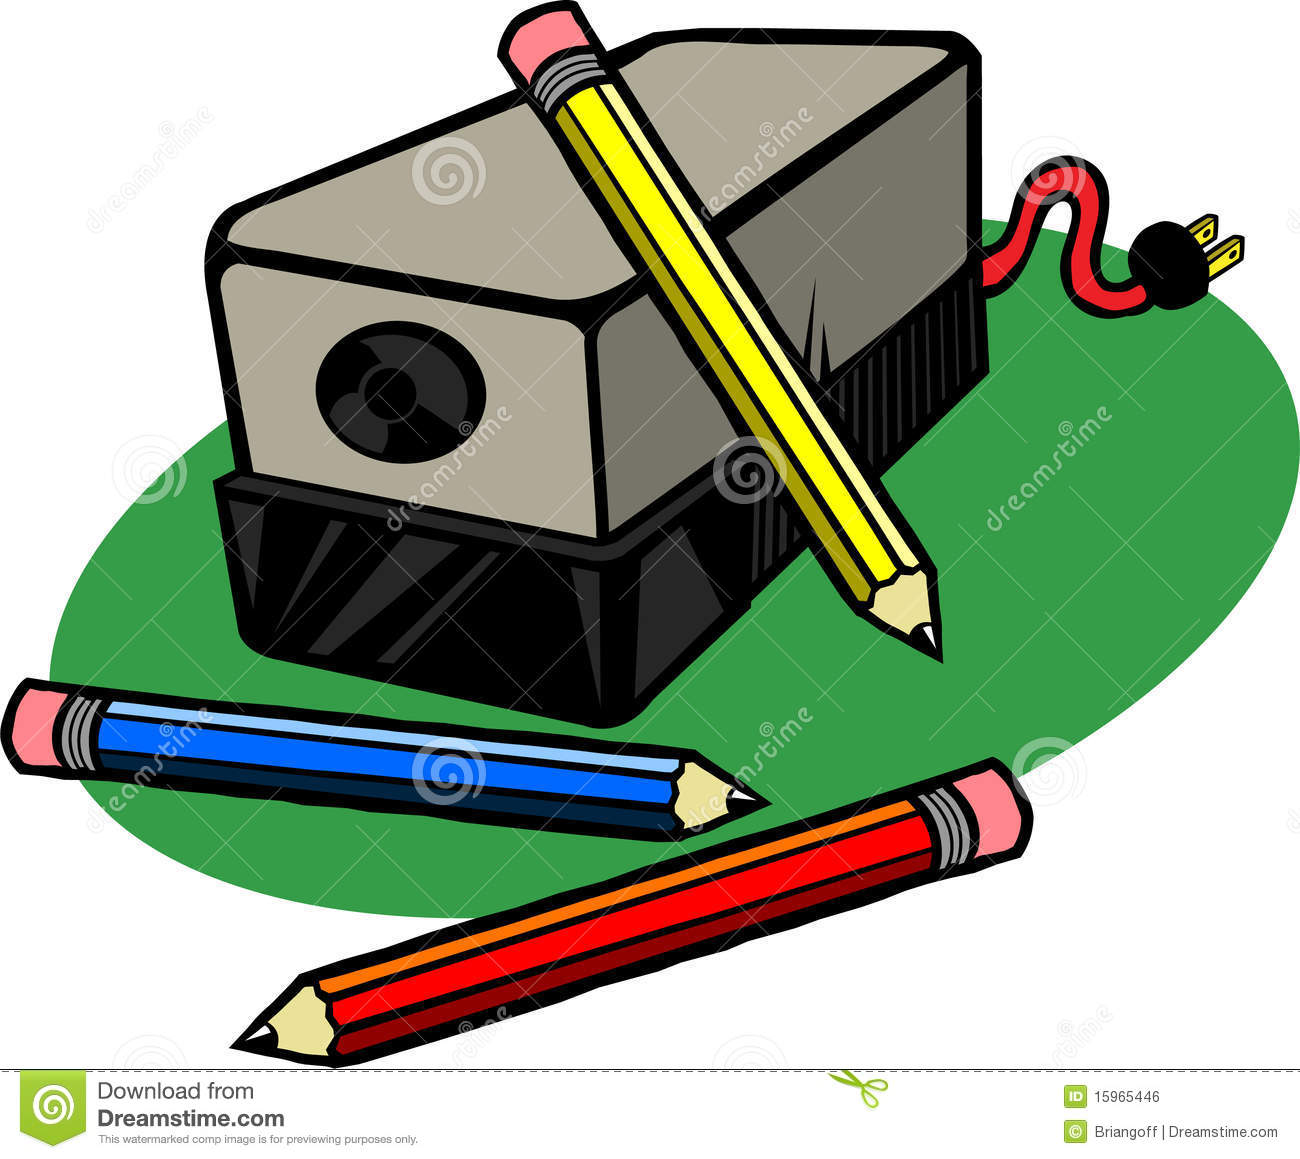 Pencil Sharpener Clipart.